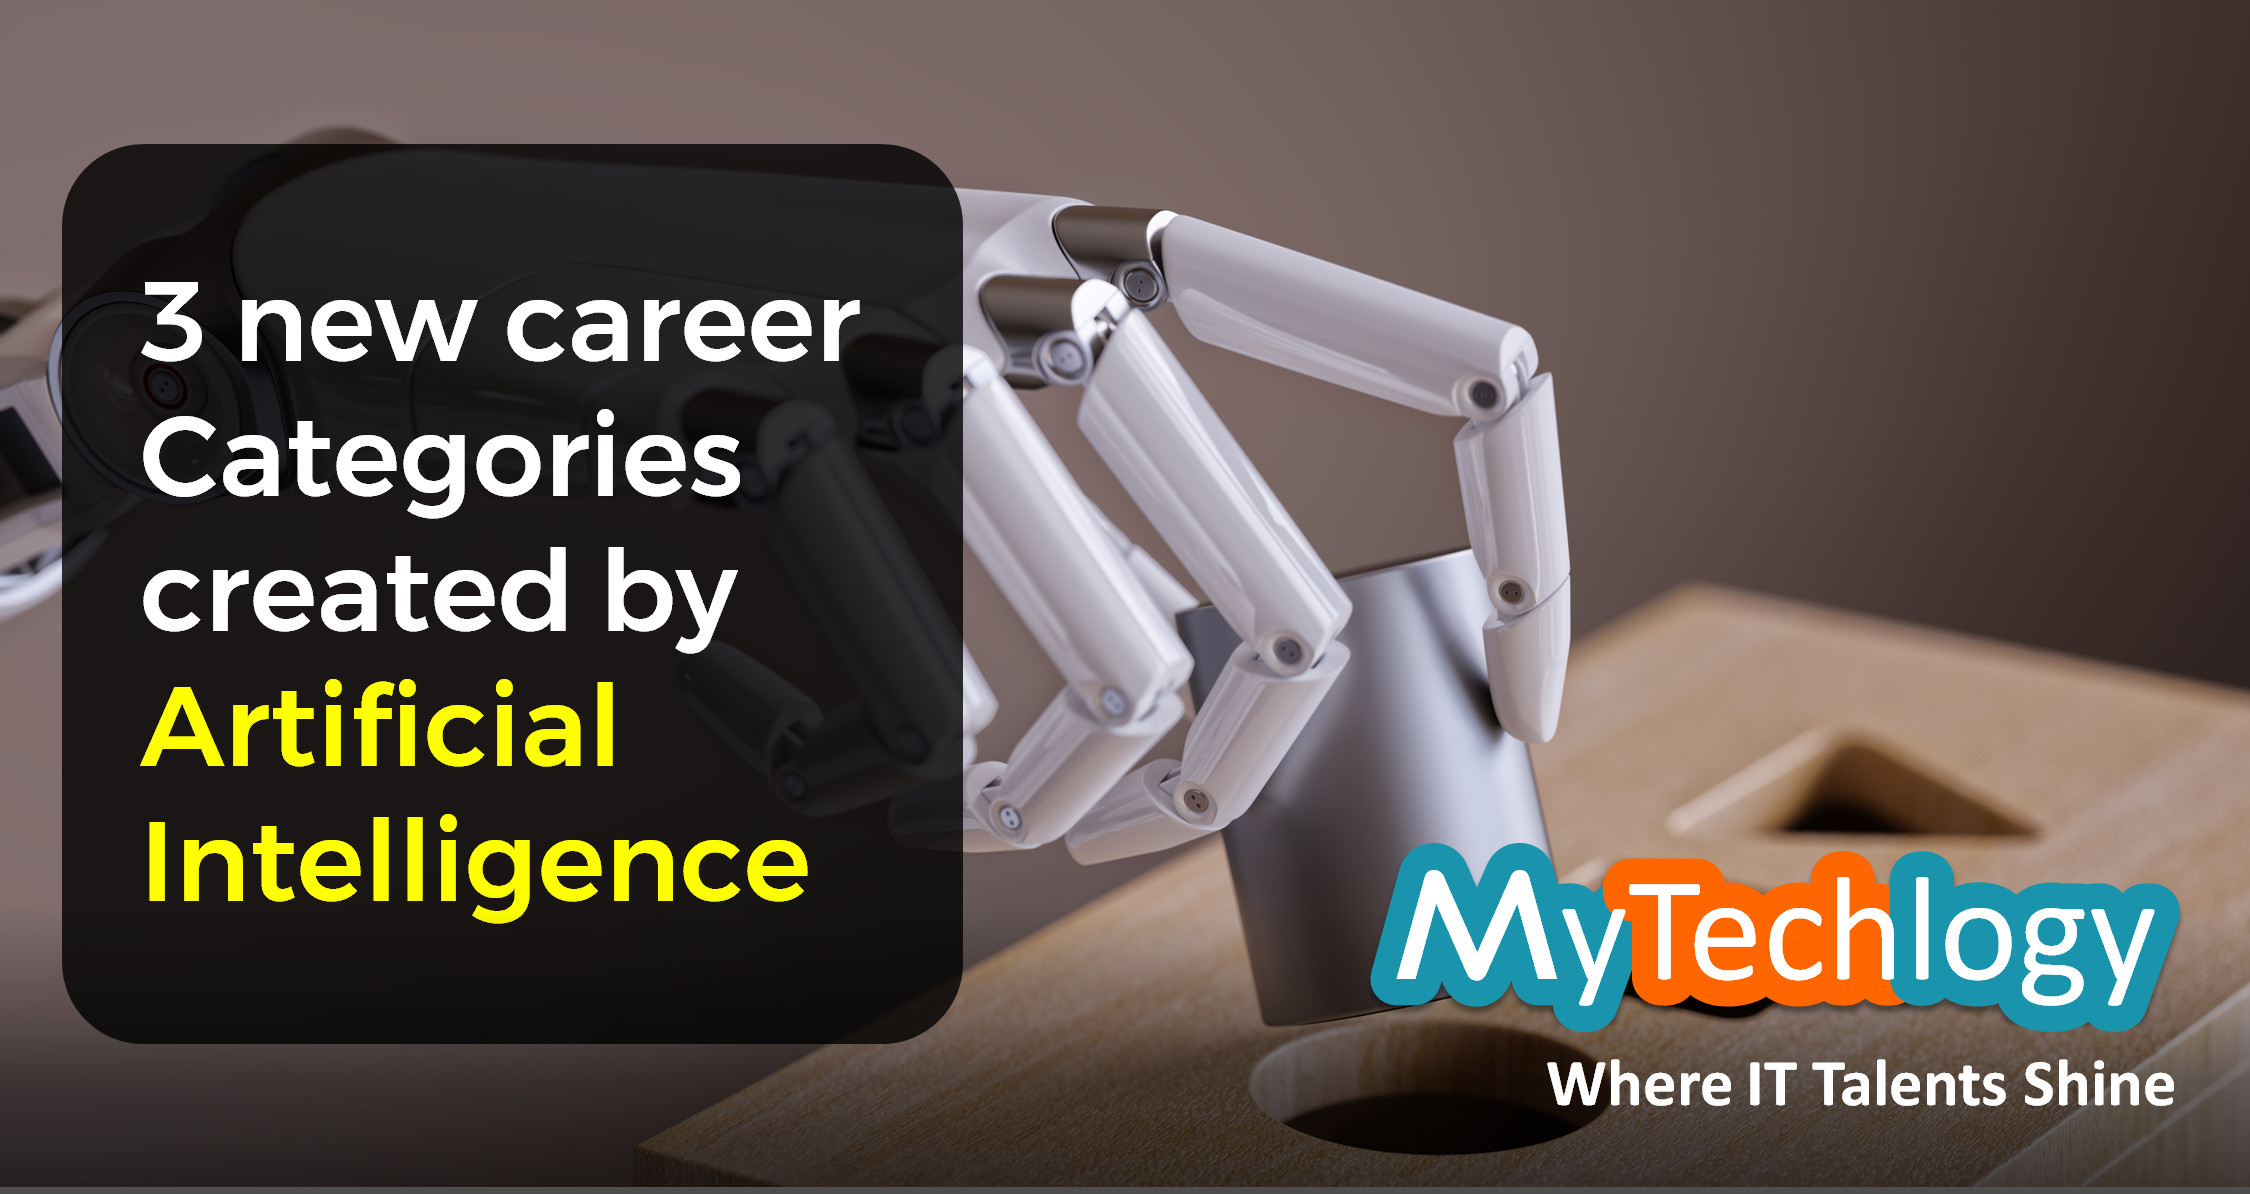 3 new career categories being created by artificial intelligence - Image 1